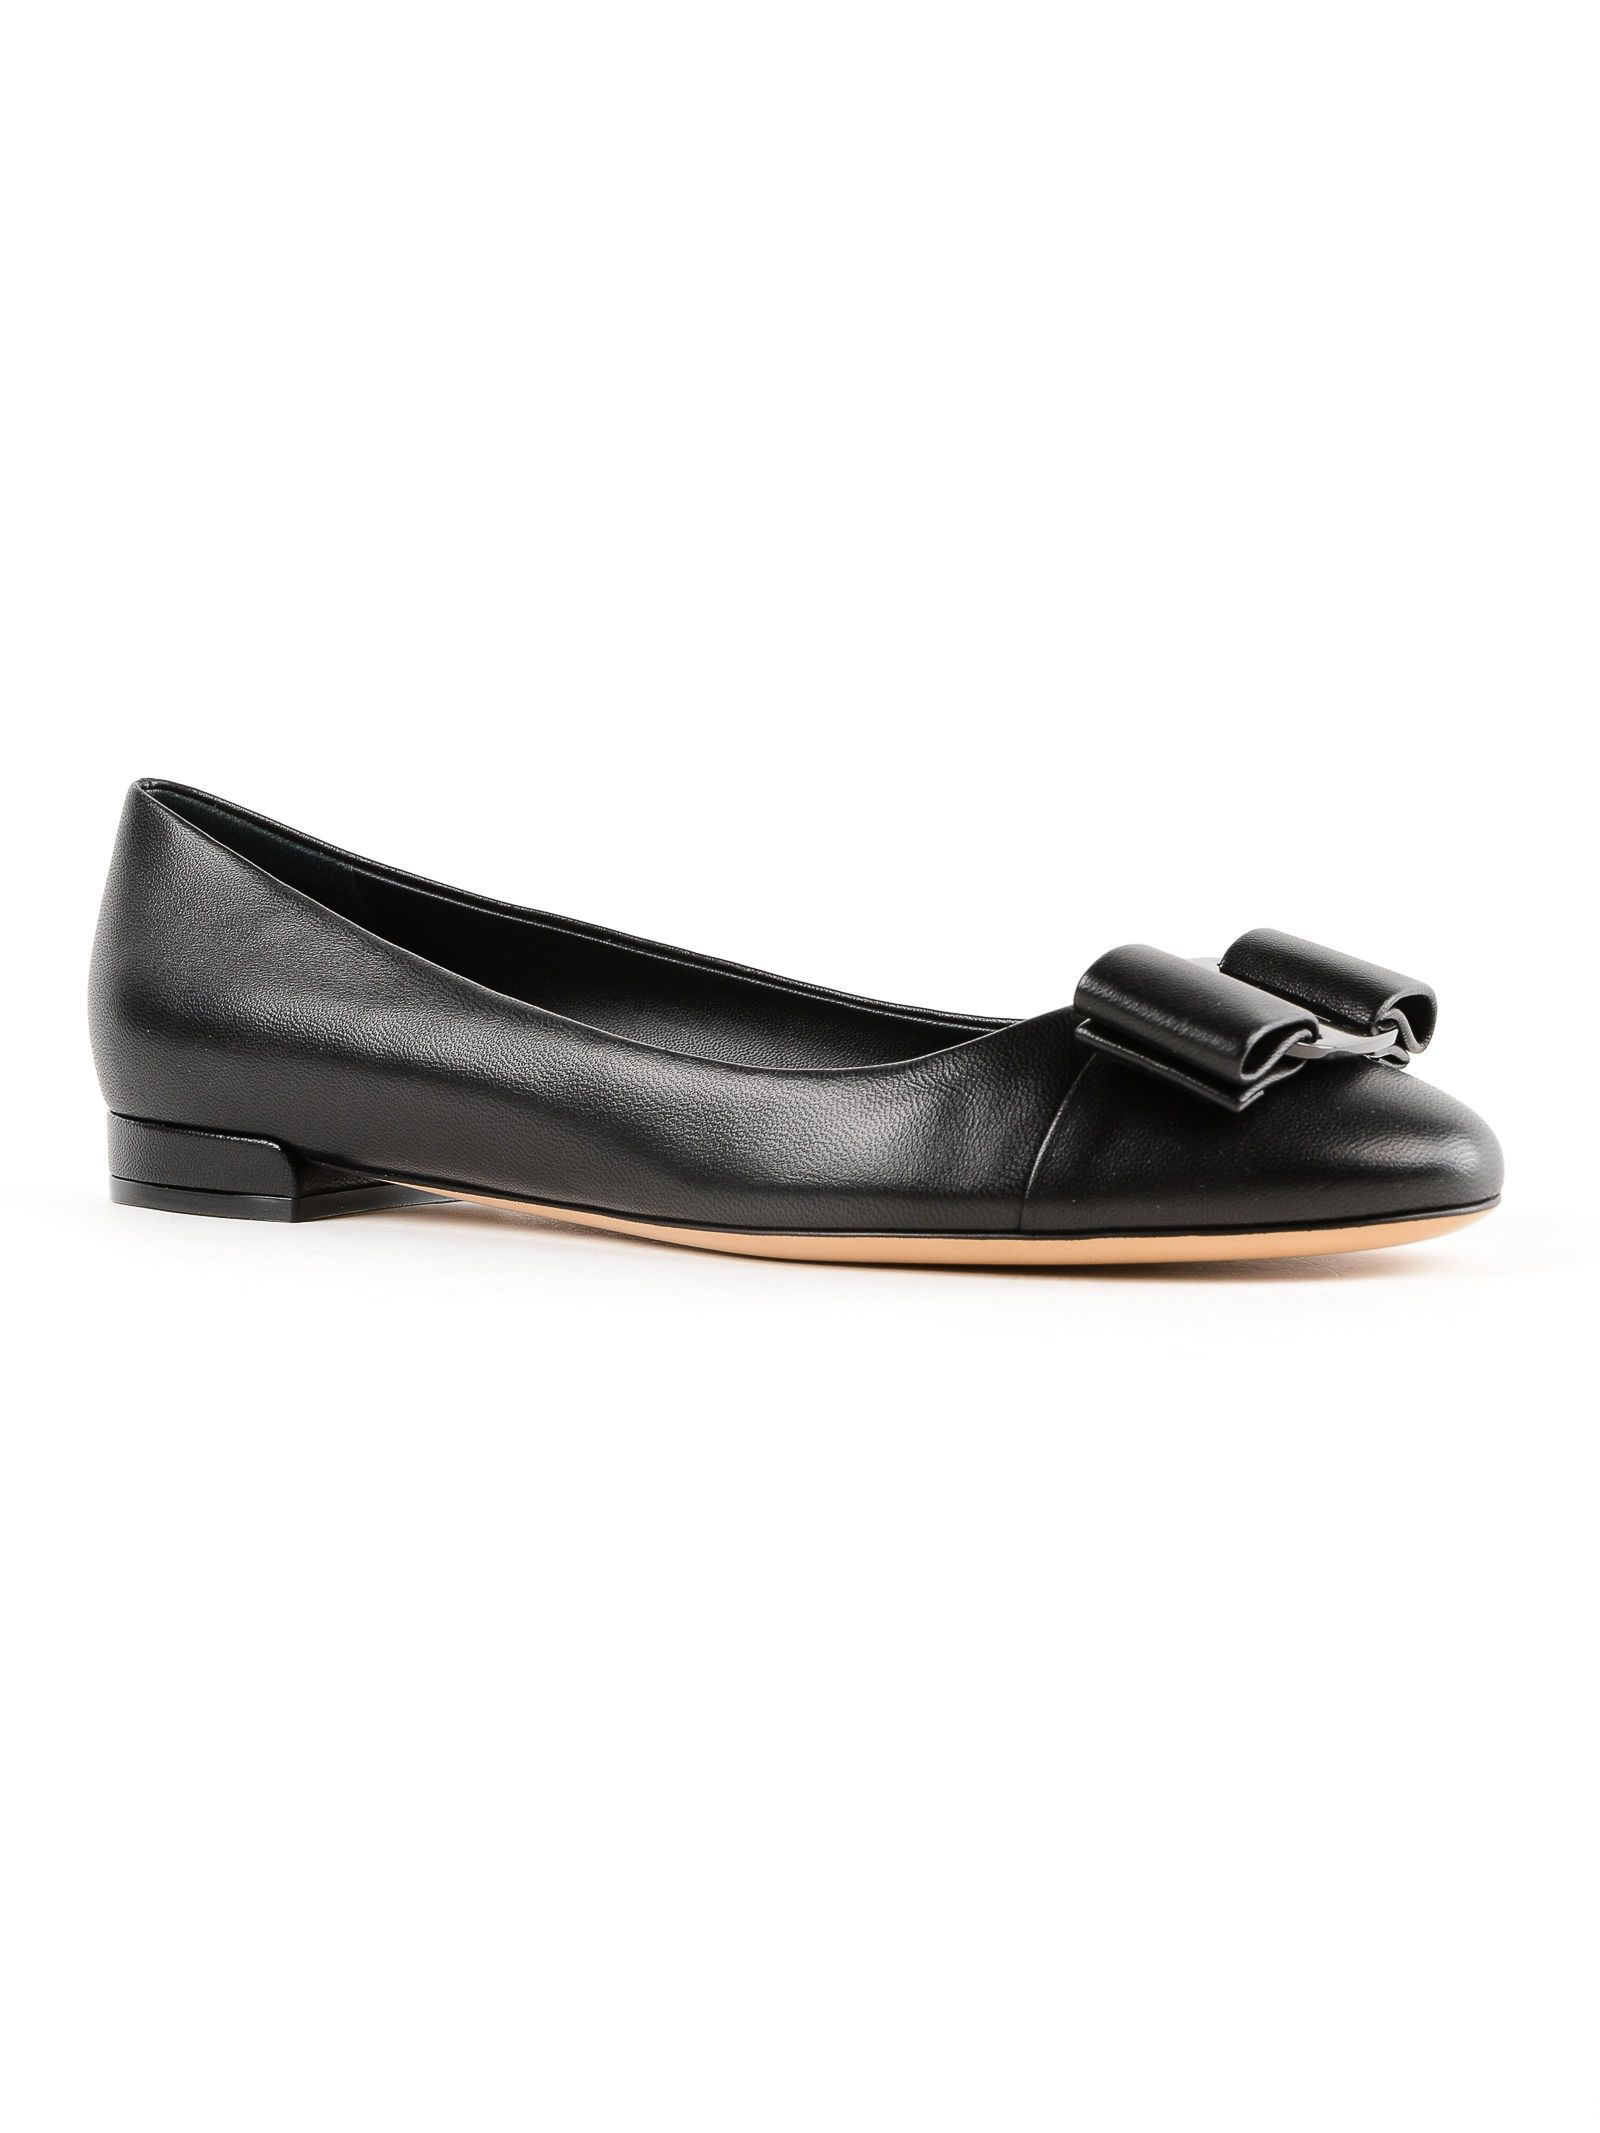 Market Price Best The Ferragamo Salvatore For Italist In xS7Iwq566